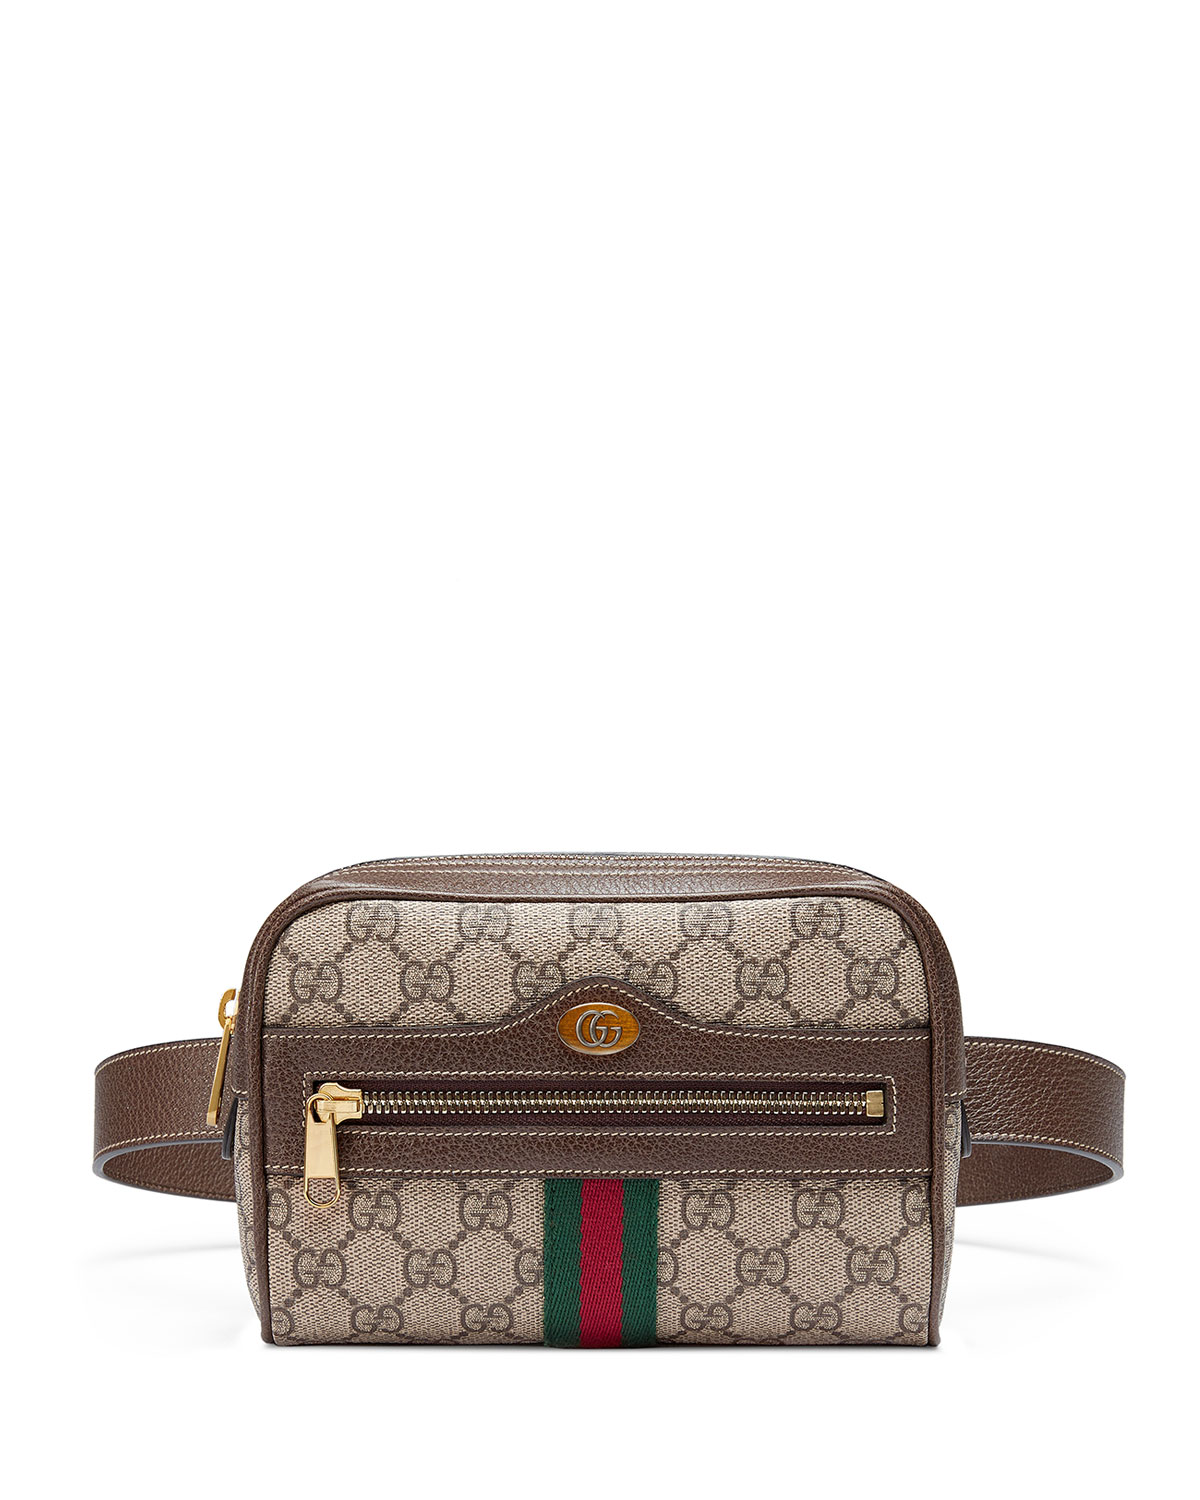 9961c56ea49eaa Gucci Ophidia GG Supreme Canvas Belt Bag | Neiman Marcus